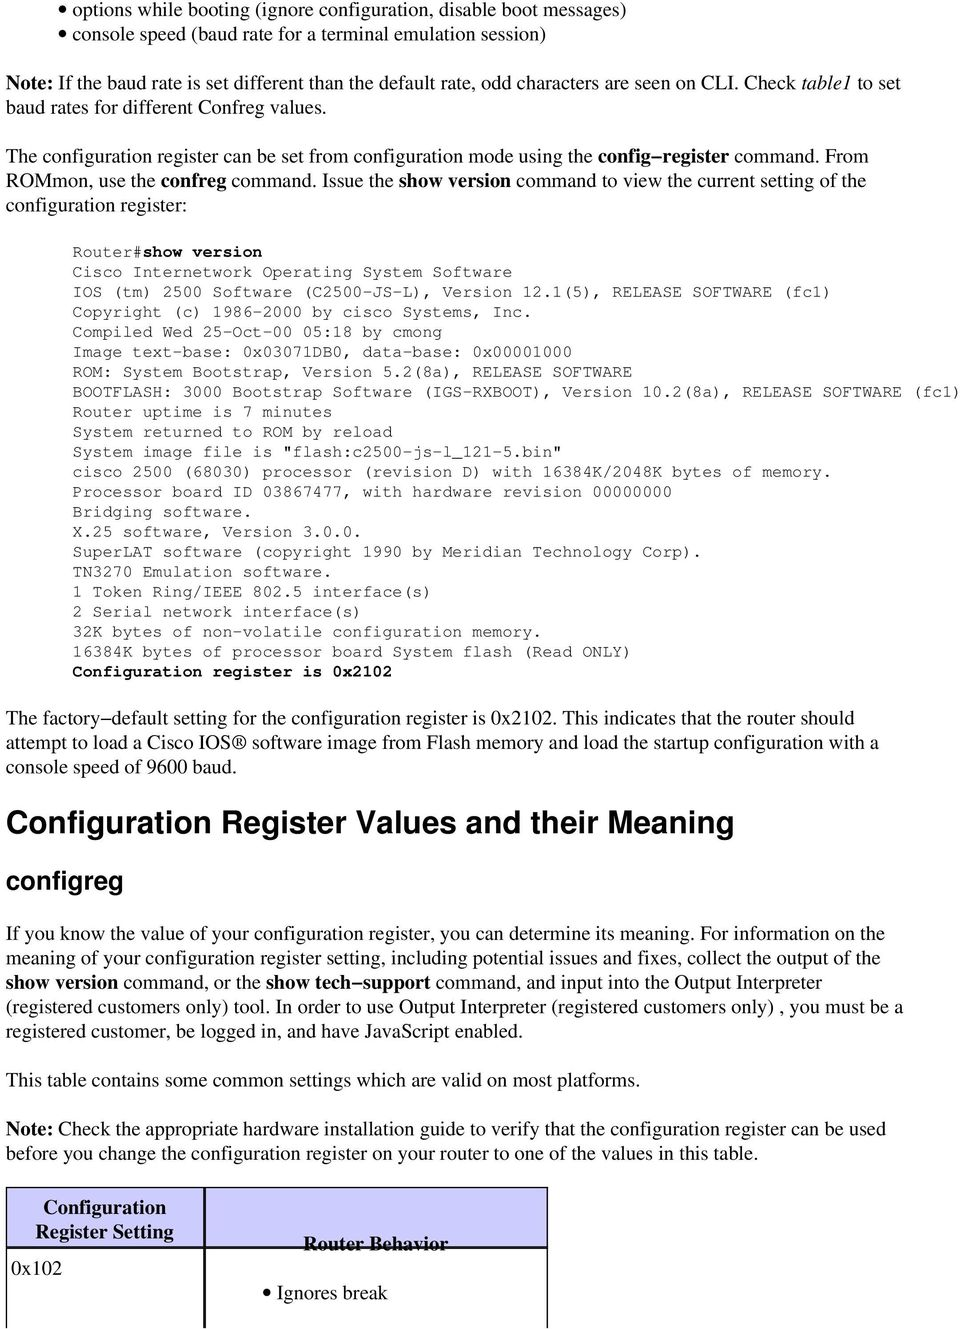 The Purpose and Use of the Configuration Register on All